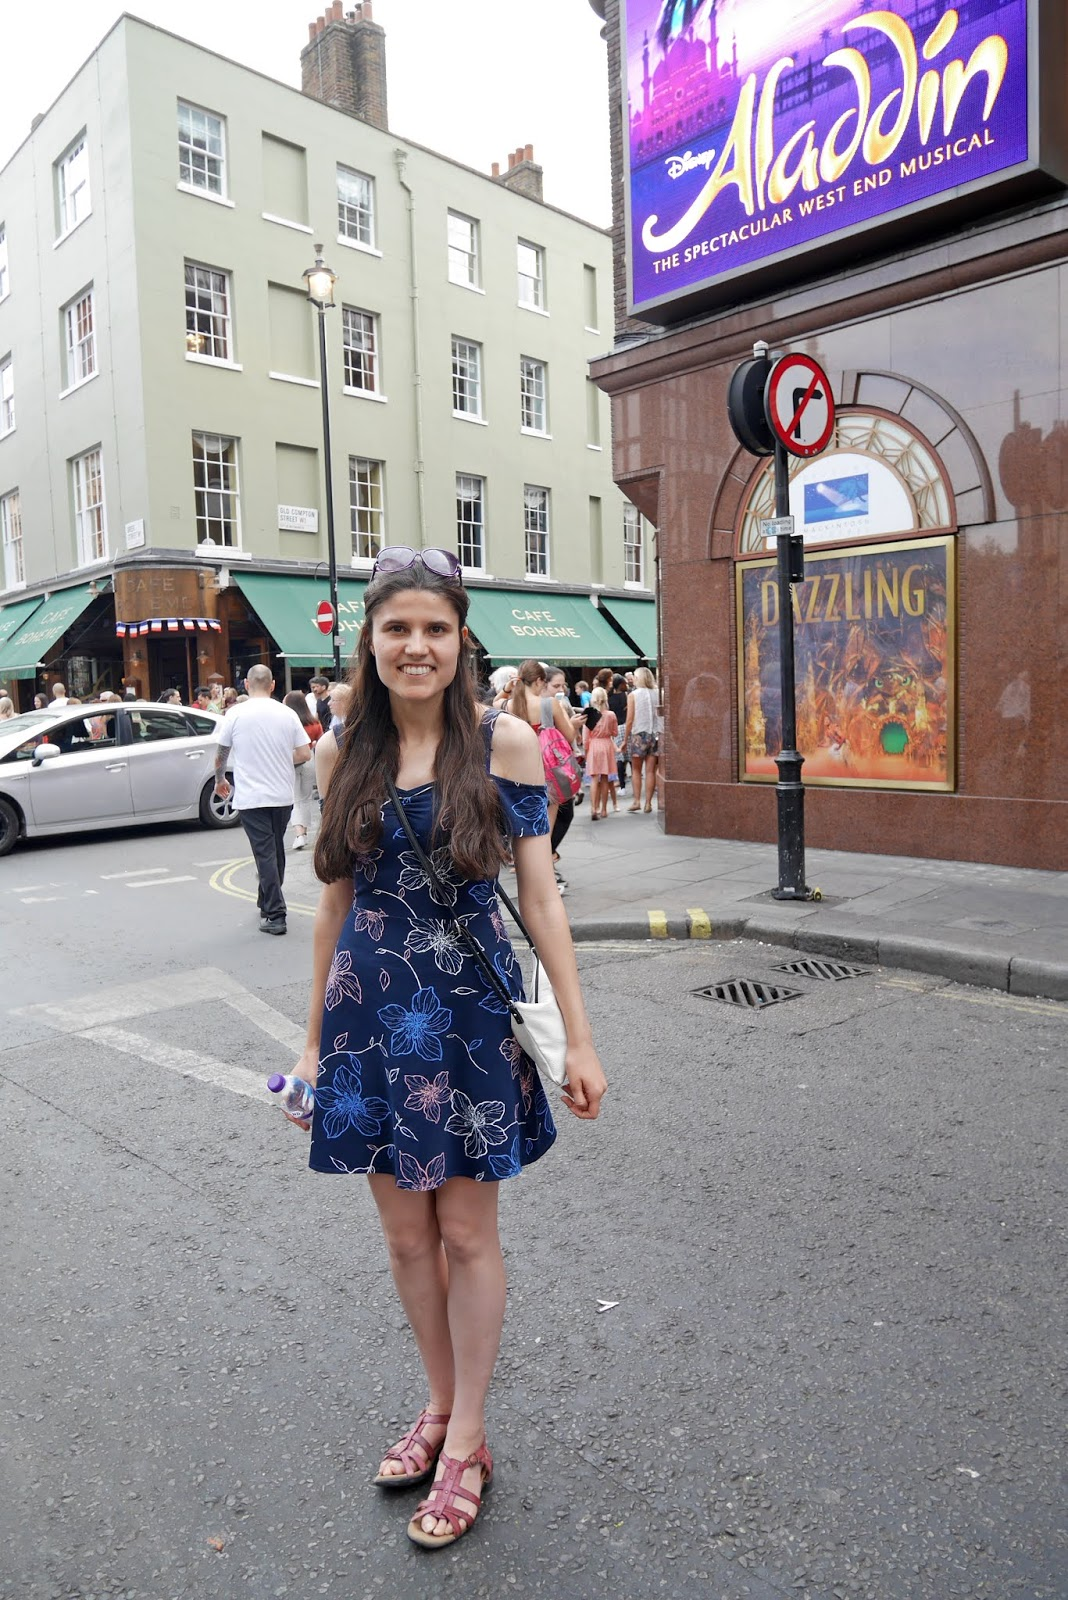 Kat Last outside the Prince Edward Theatre in London which is home to Aladdin The Musical